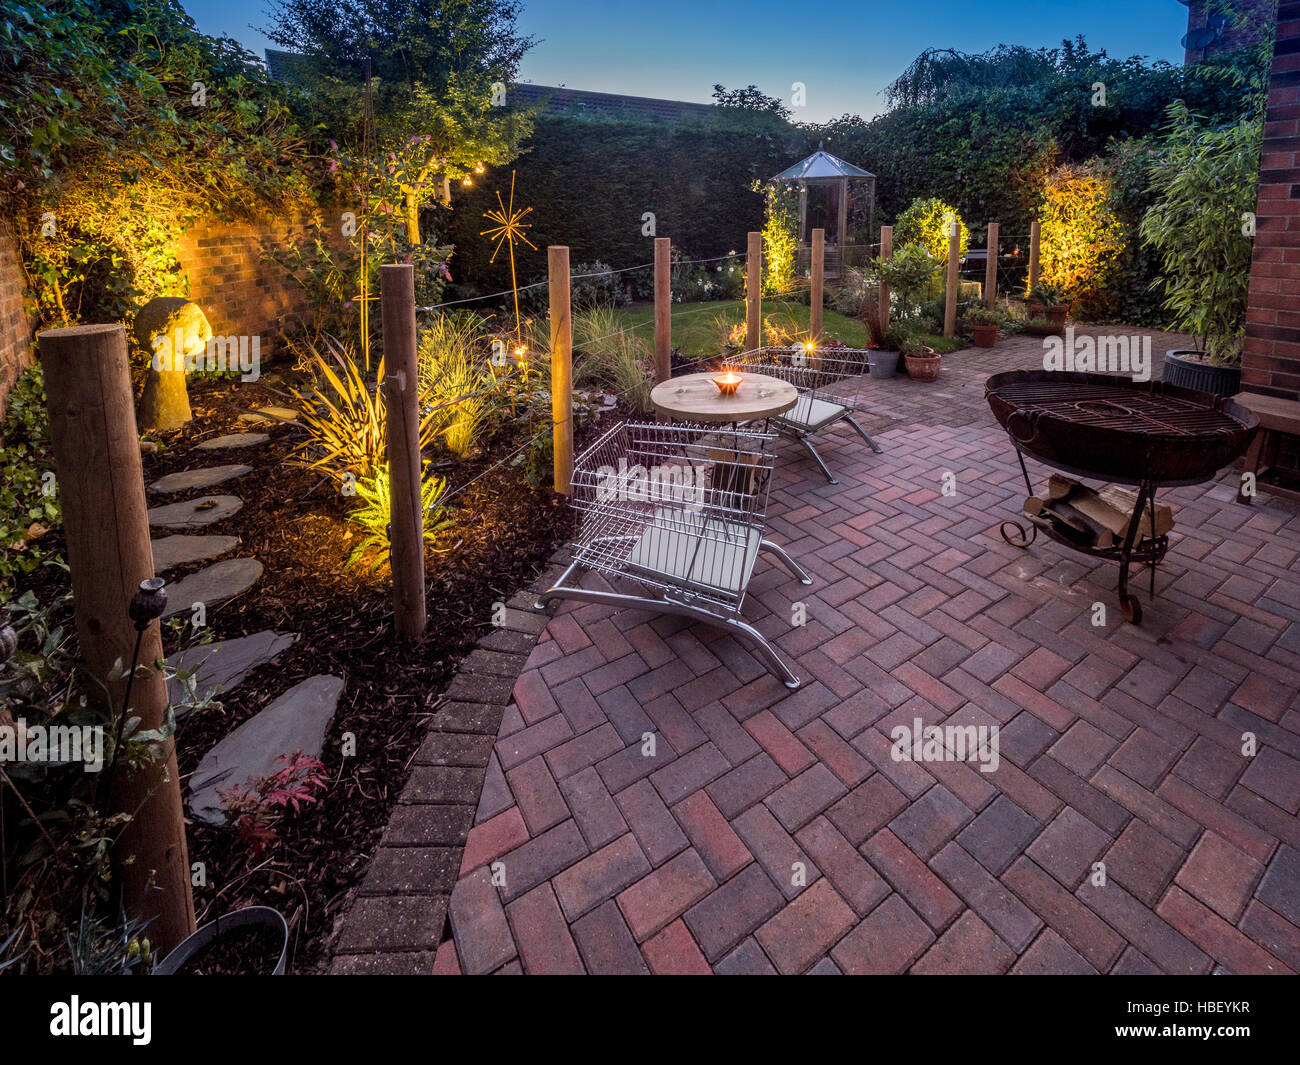 Modern garden design at dusk with contemporary wire shopping trolley chairs for seating and large Kadai firebowl - Stock Image